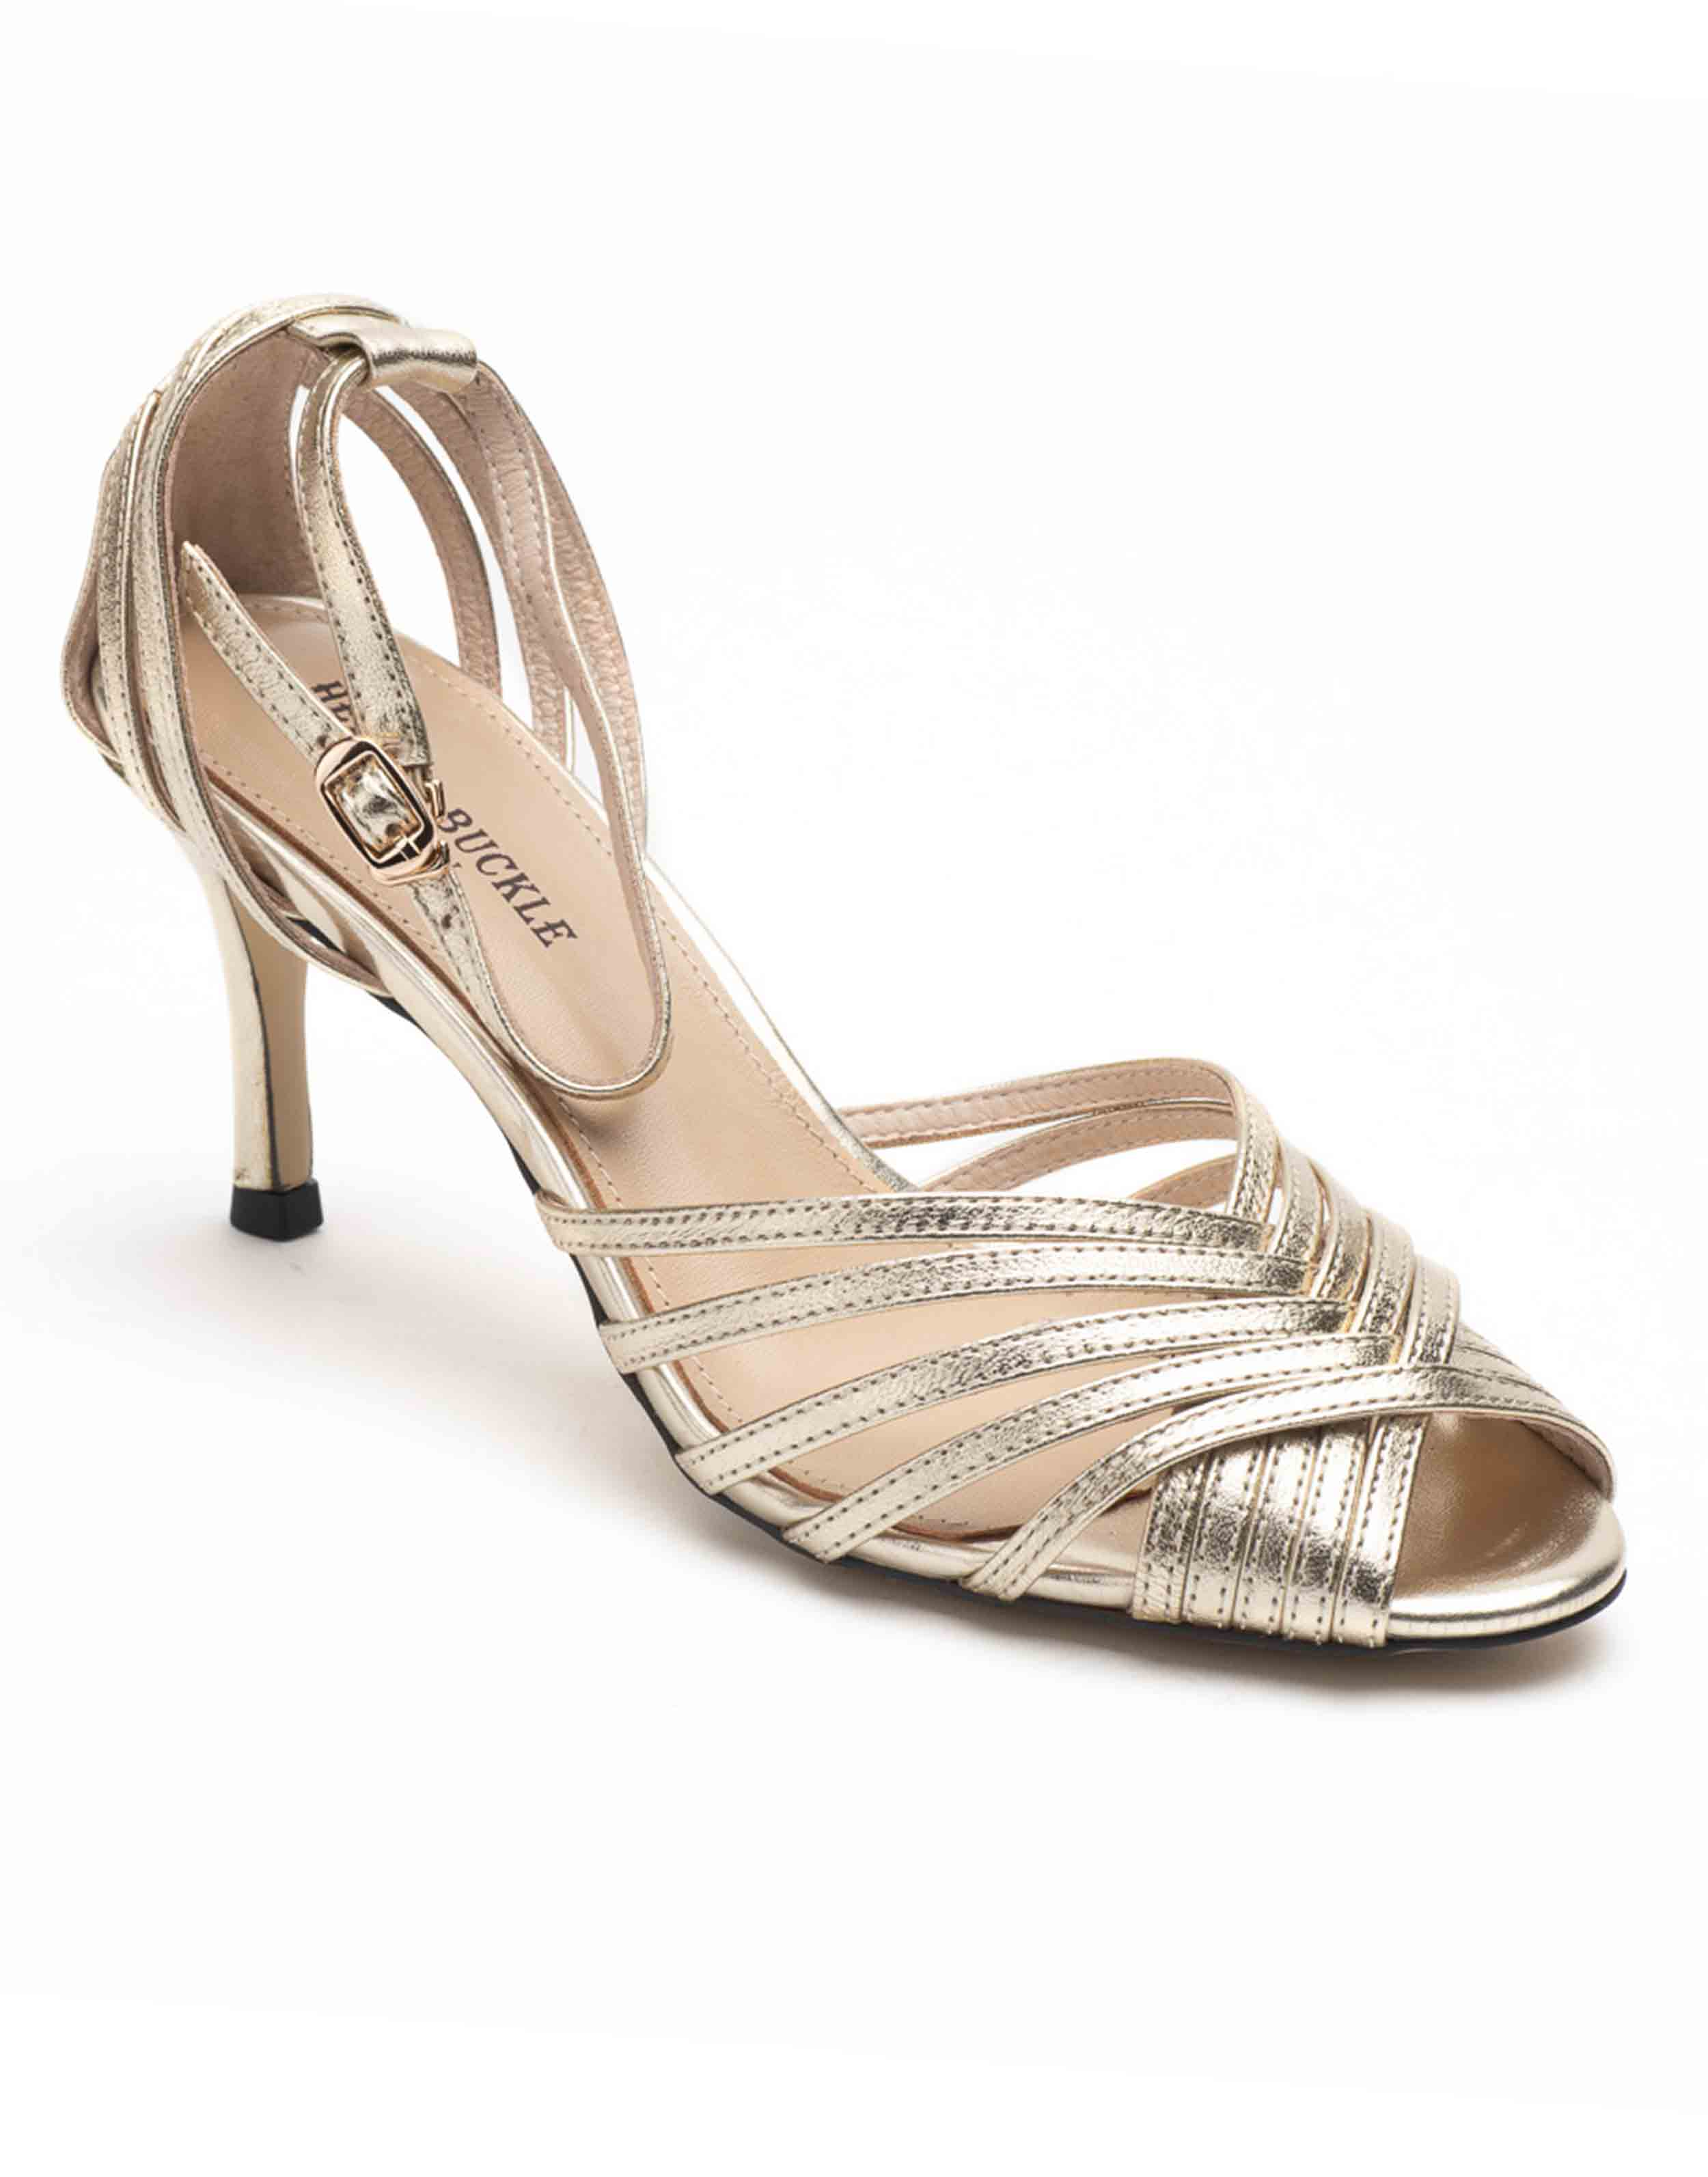 Heel _ Buckle London-Shoes-HBDARW088-Metallic Gold Ankle Strap Sandals-Metallic-2